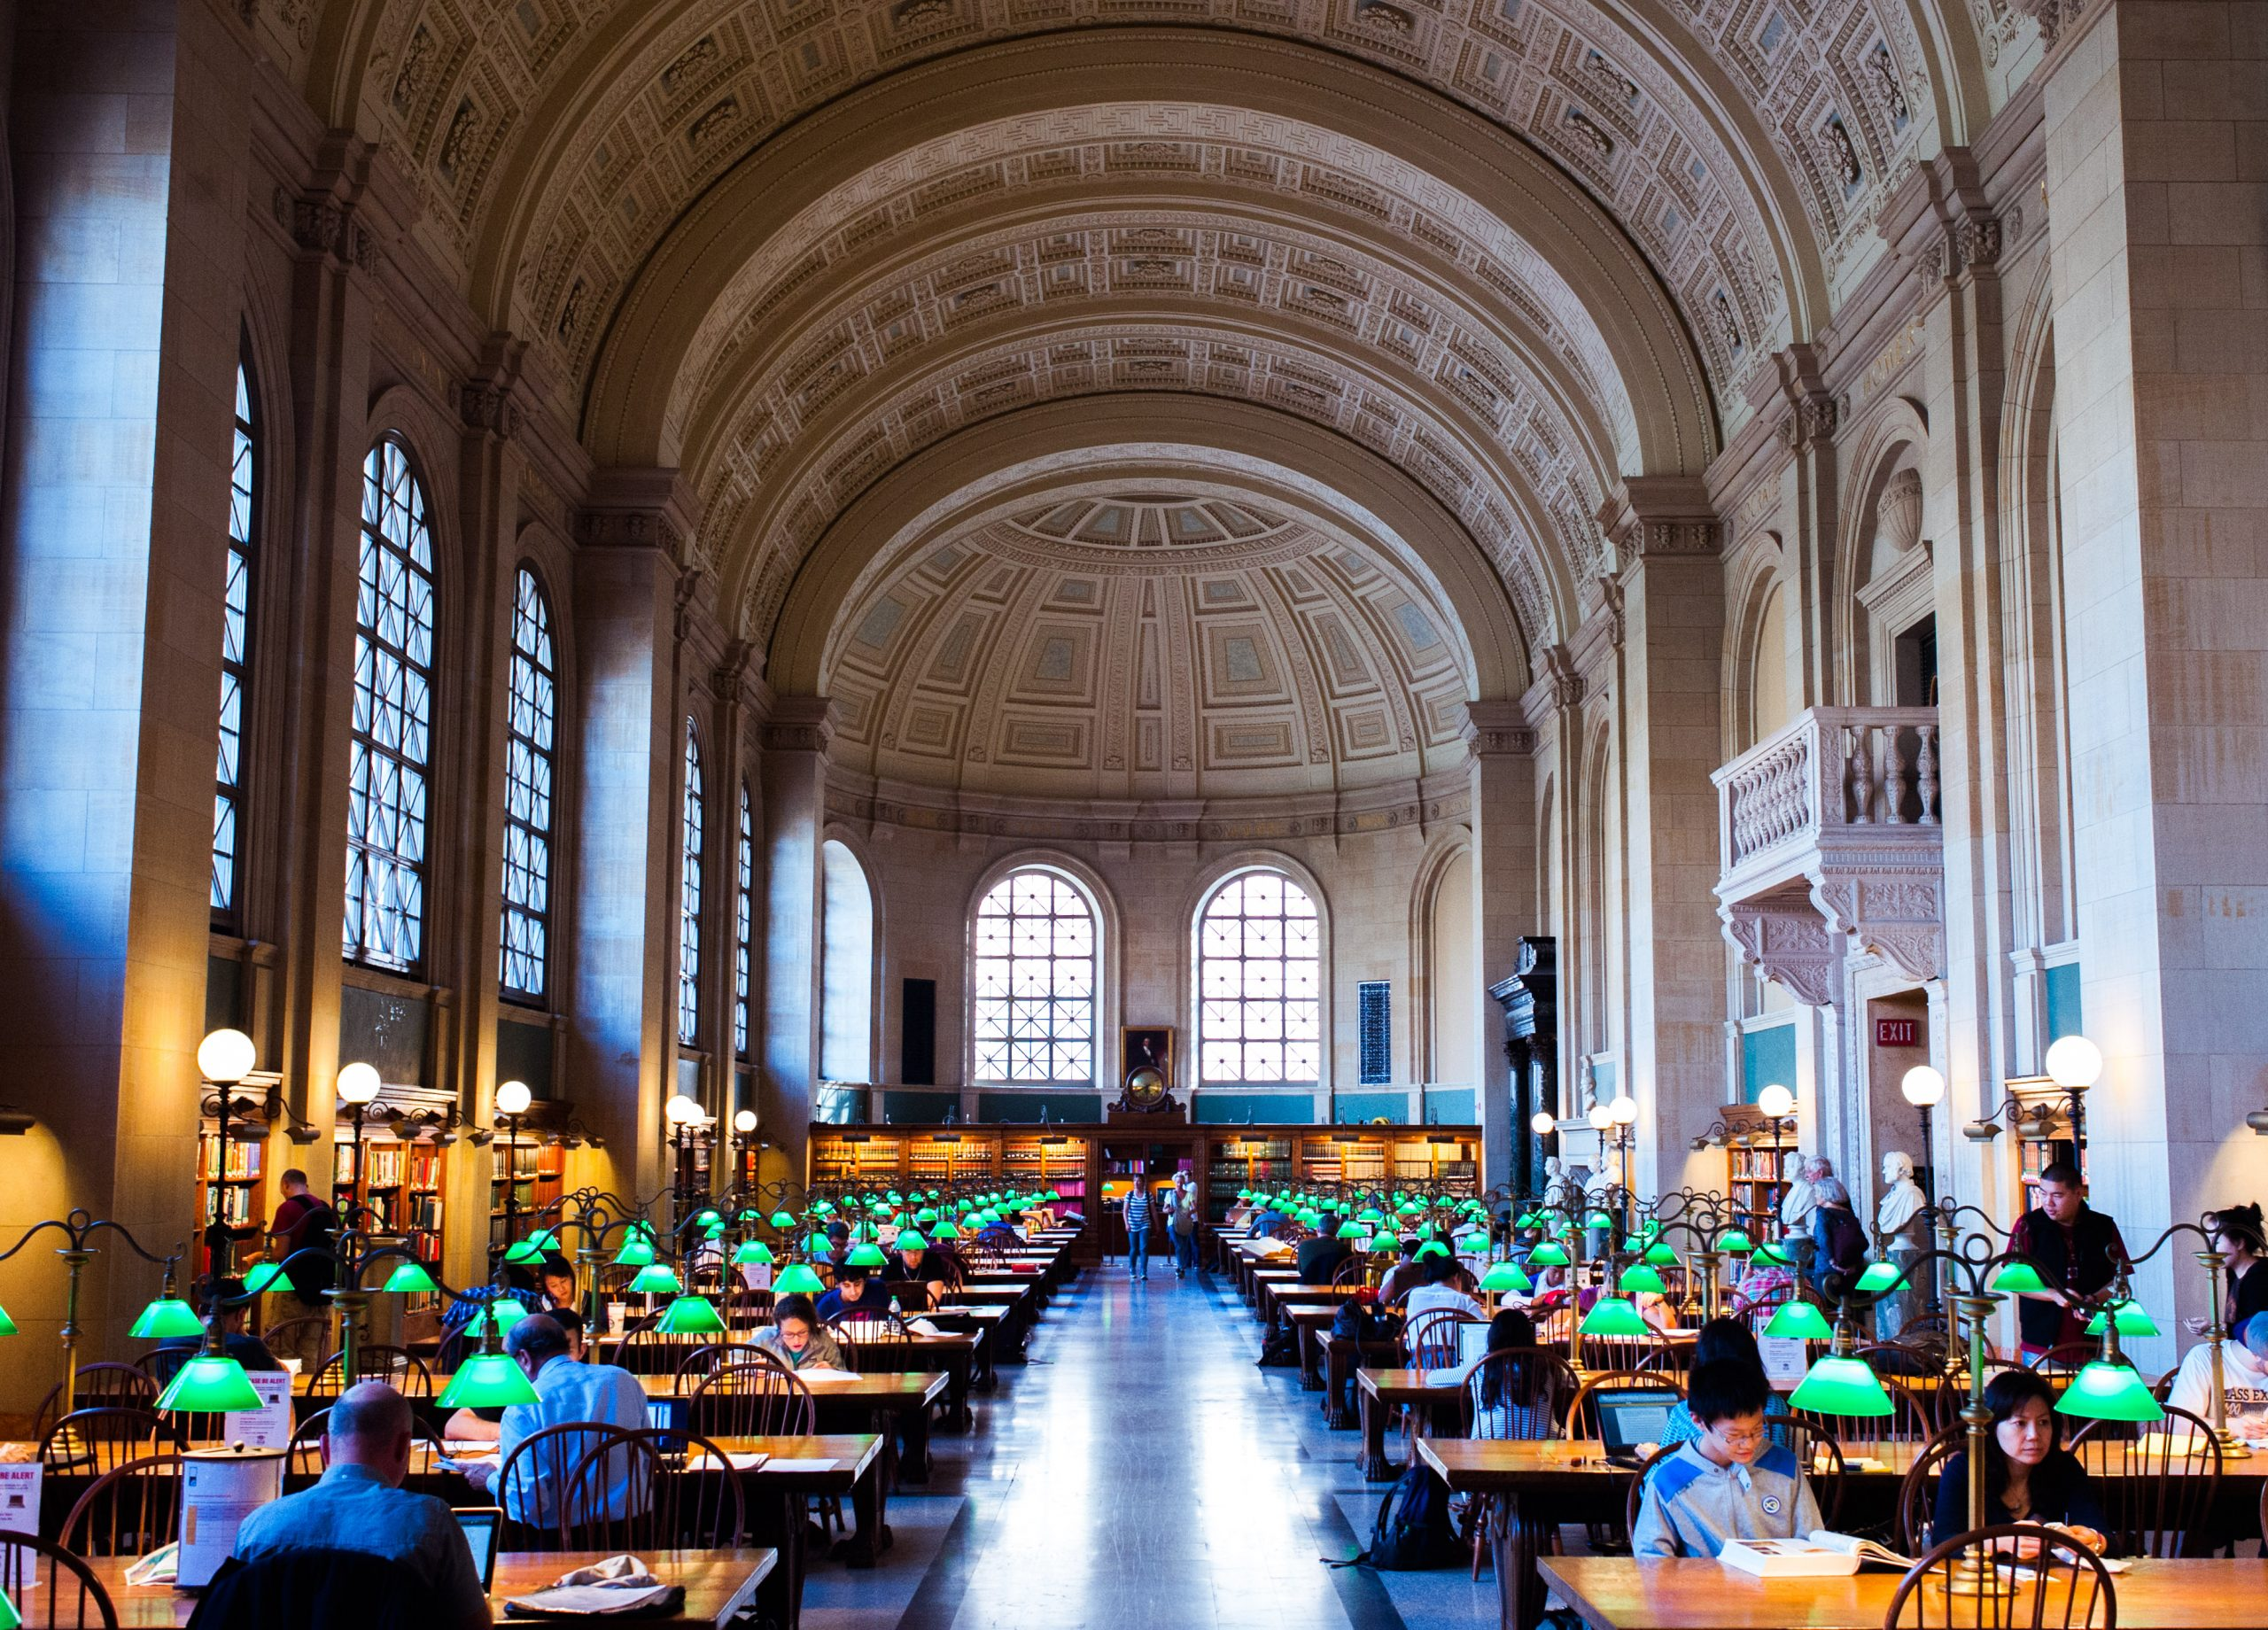 Best Place to See In Boston-Public Library